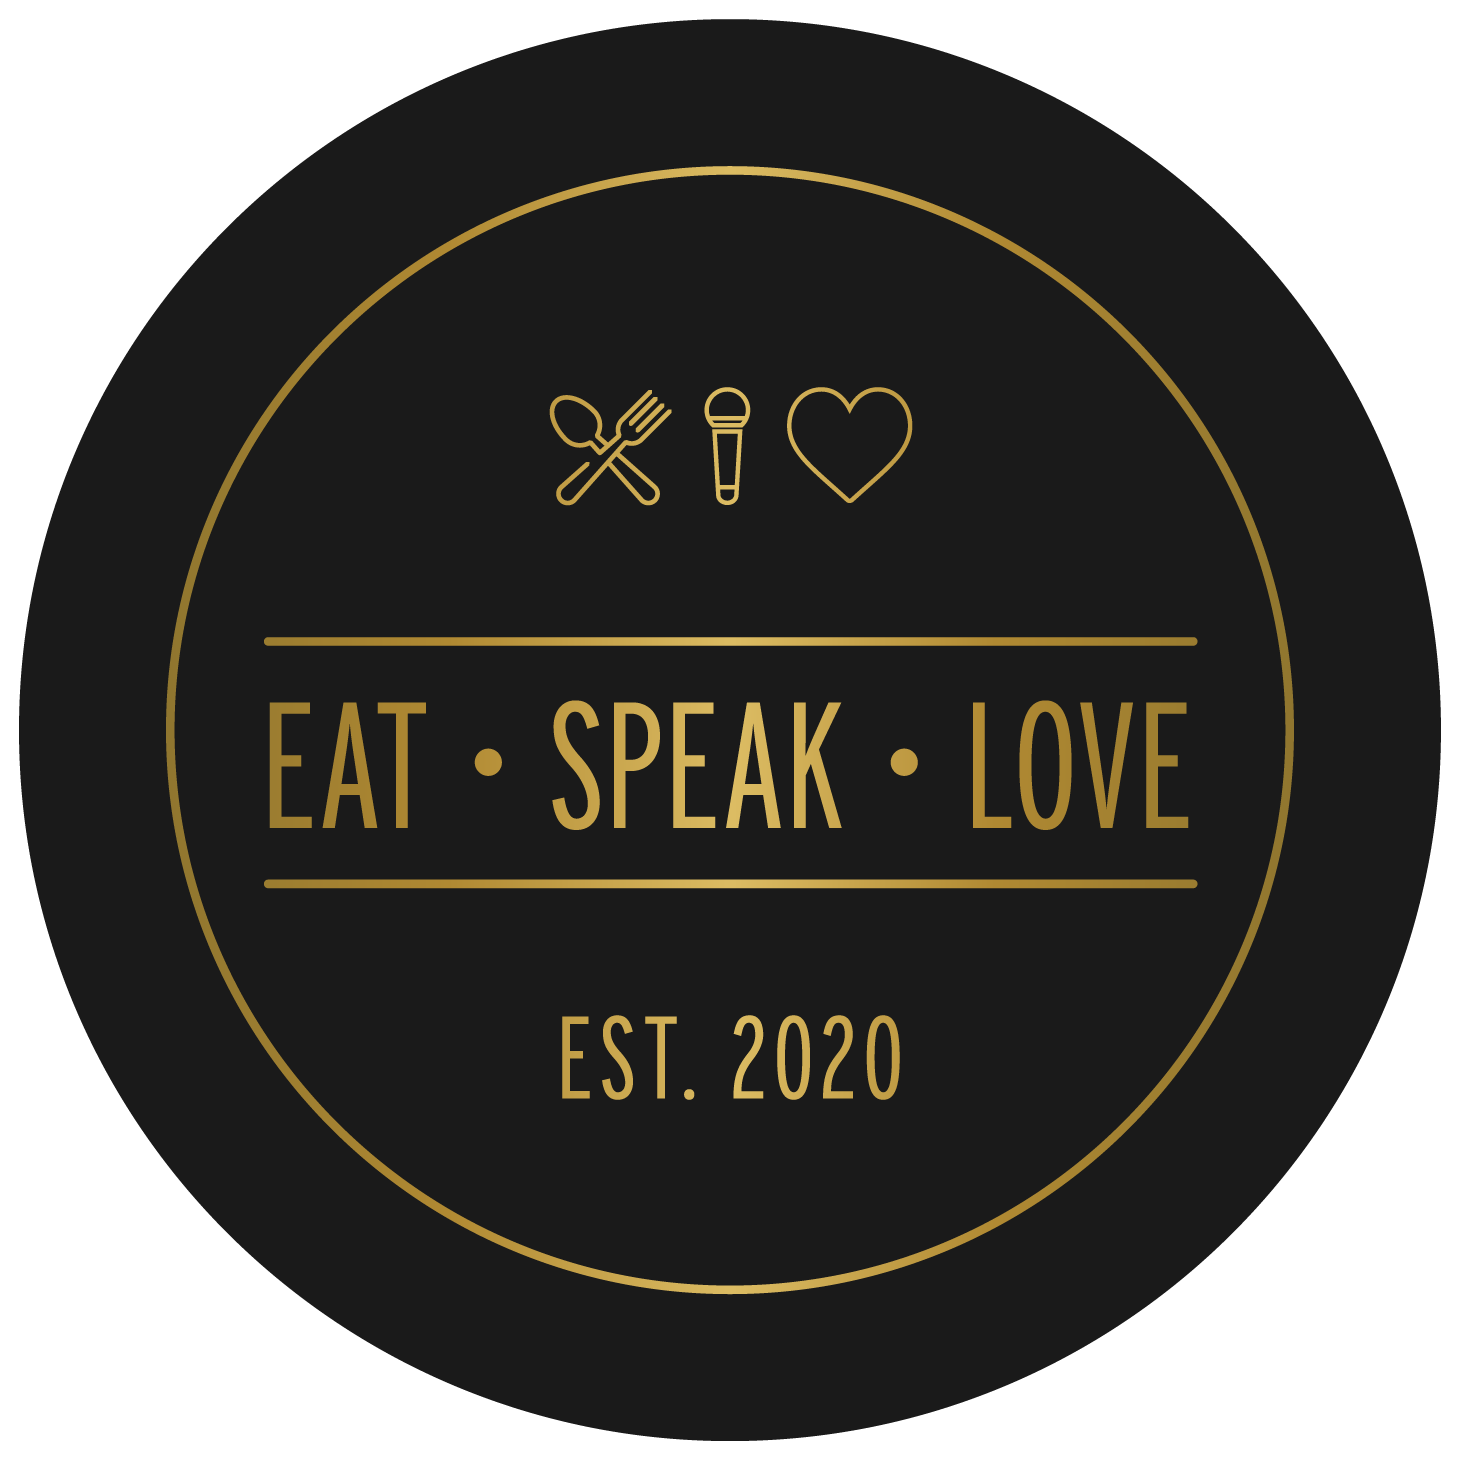 Eat Speak Love